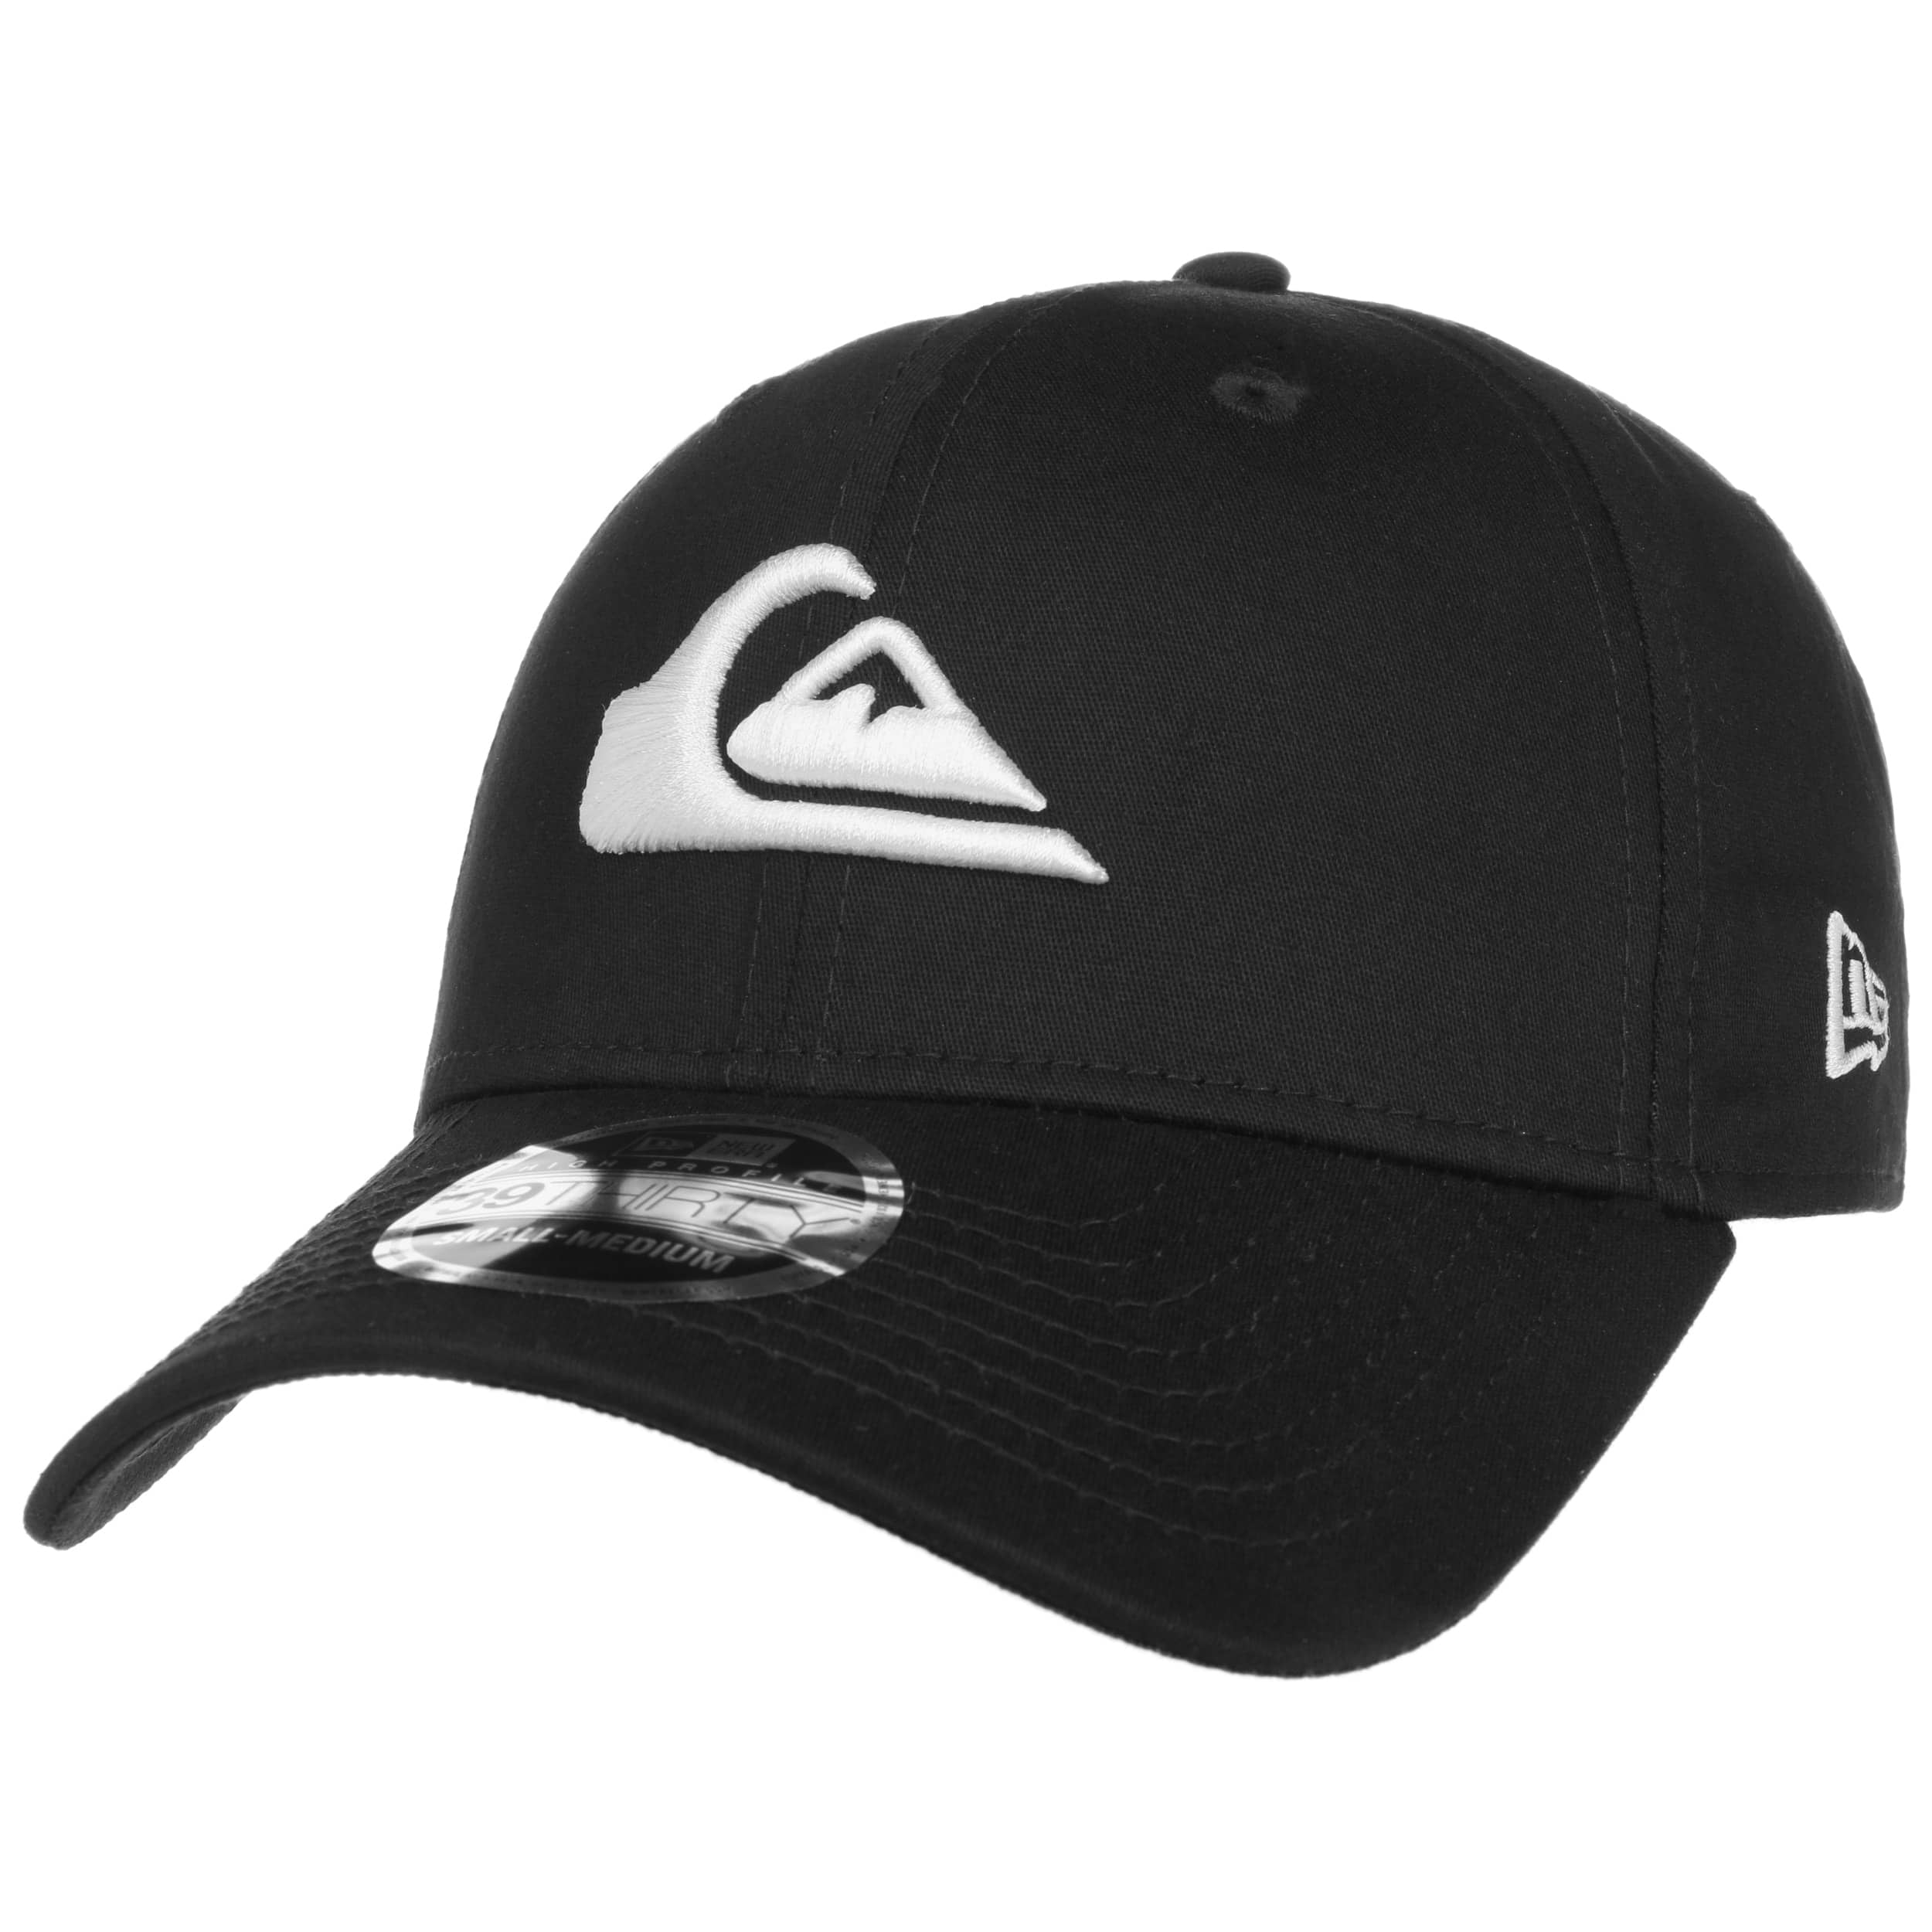 Casquette Mountain \u0026 Wave by Quiksilver , noir,blanc 2